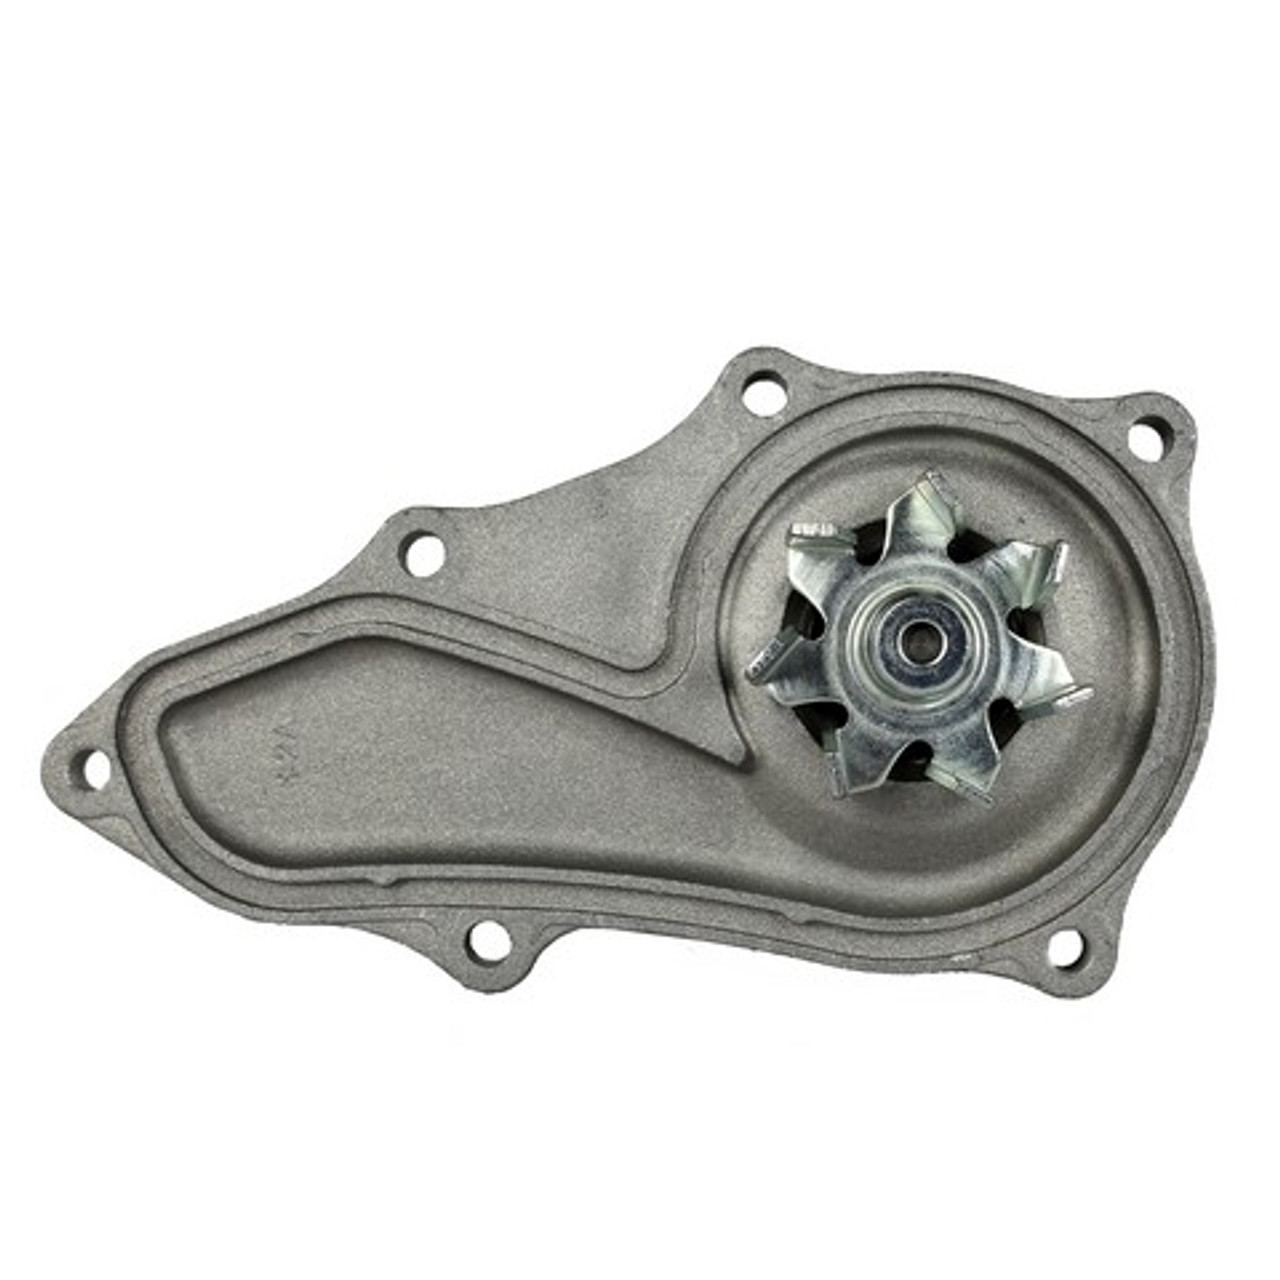 Water Pump 2.4L 2011 Acura TSX - WP242.3